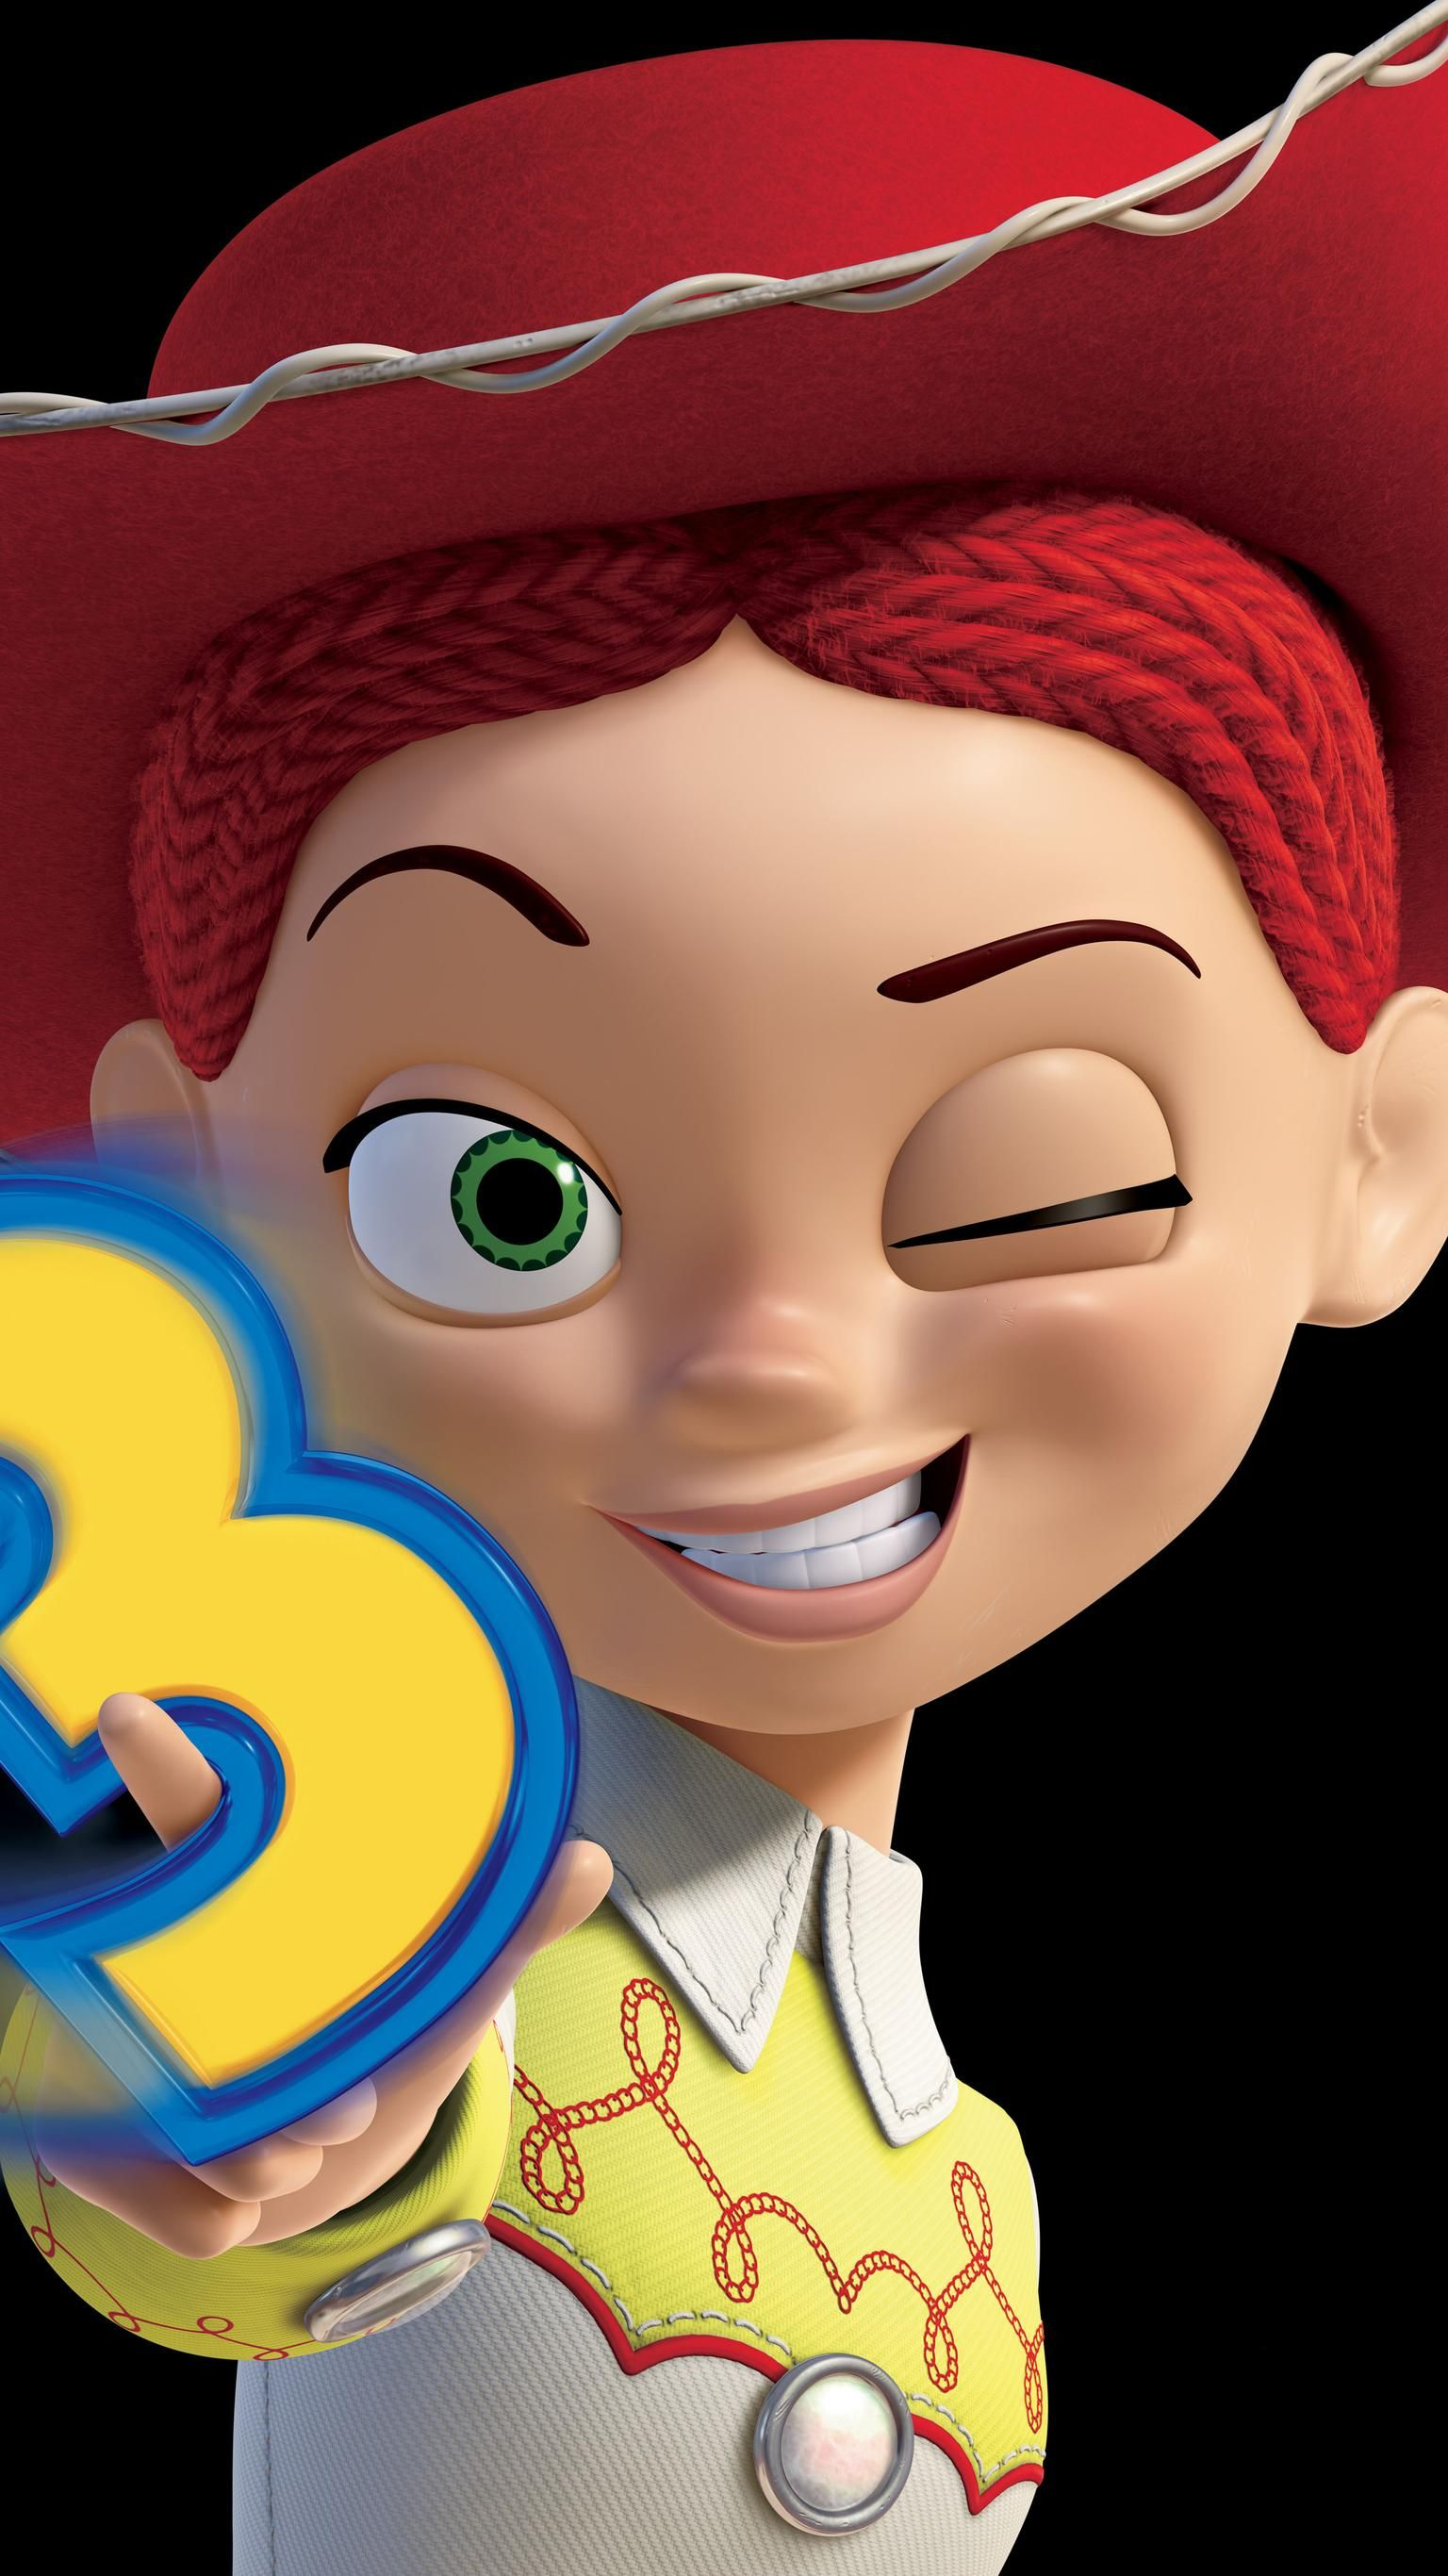 Toy Story 3 2010 Phone Wallpaper Moviemania Jessie Toy Story Toy Story 3 Toy Story 3 Movie